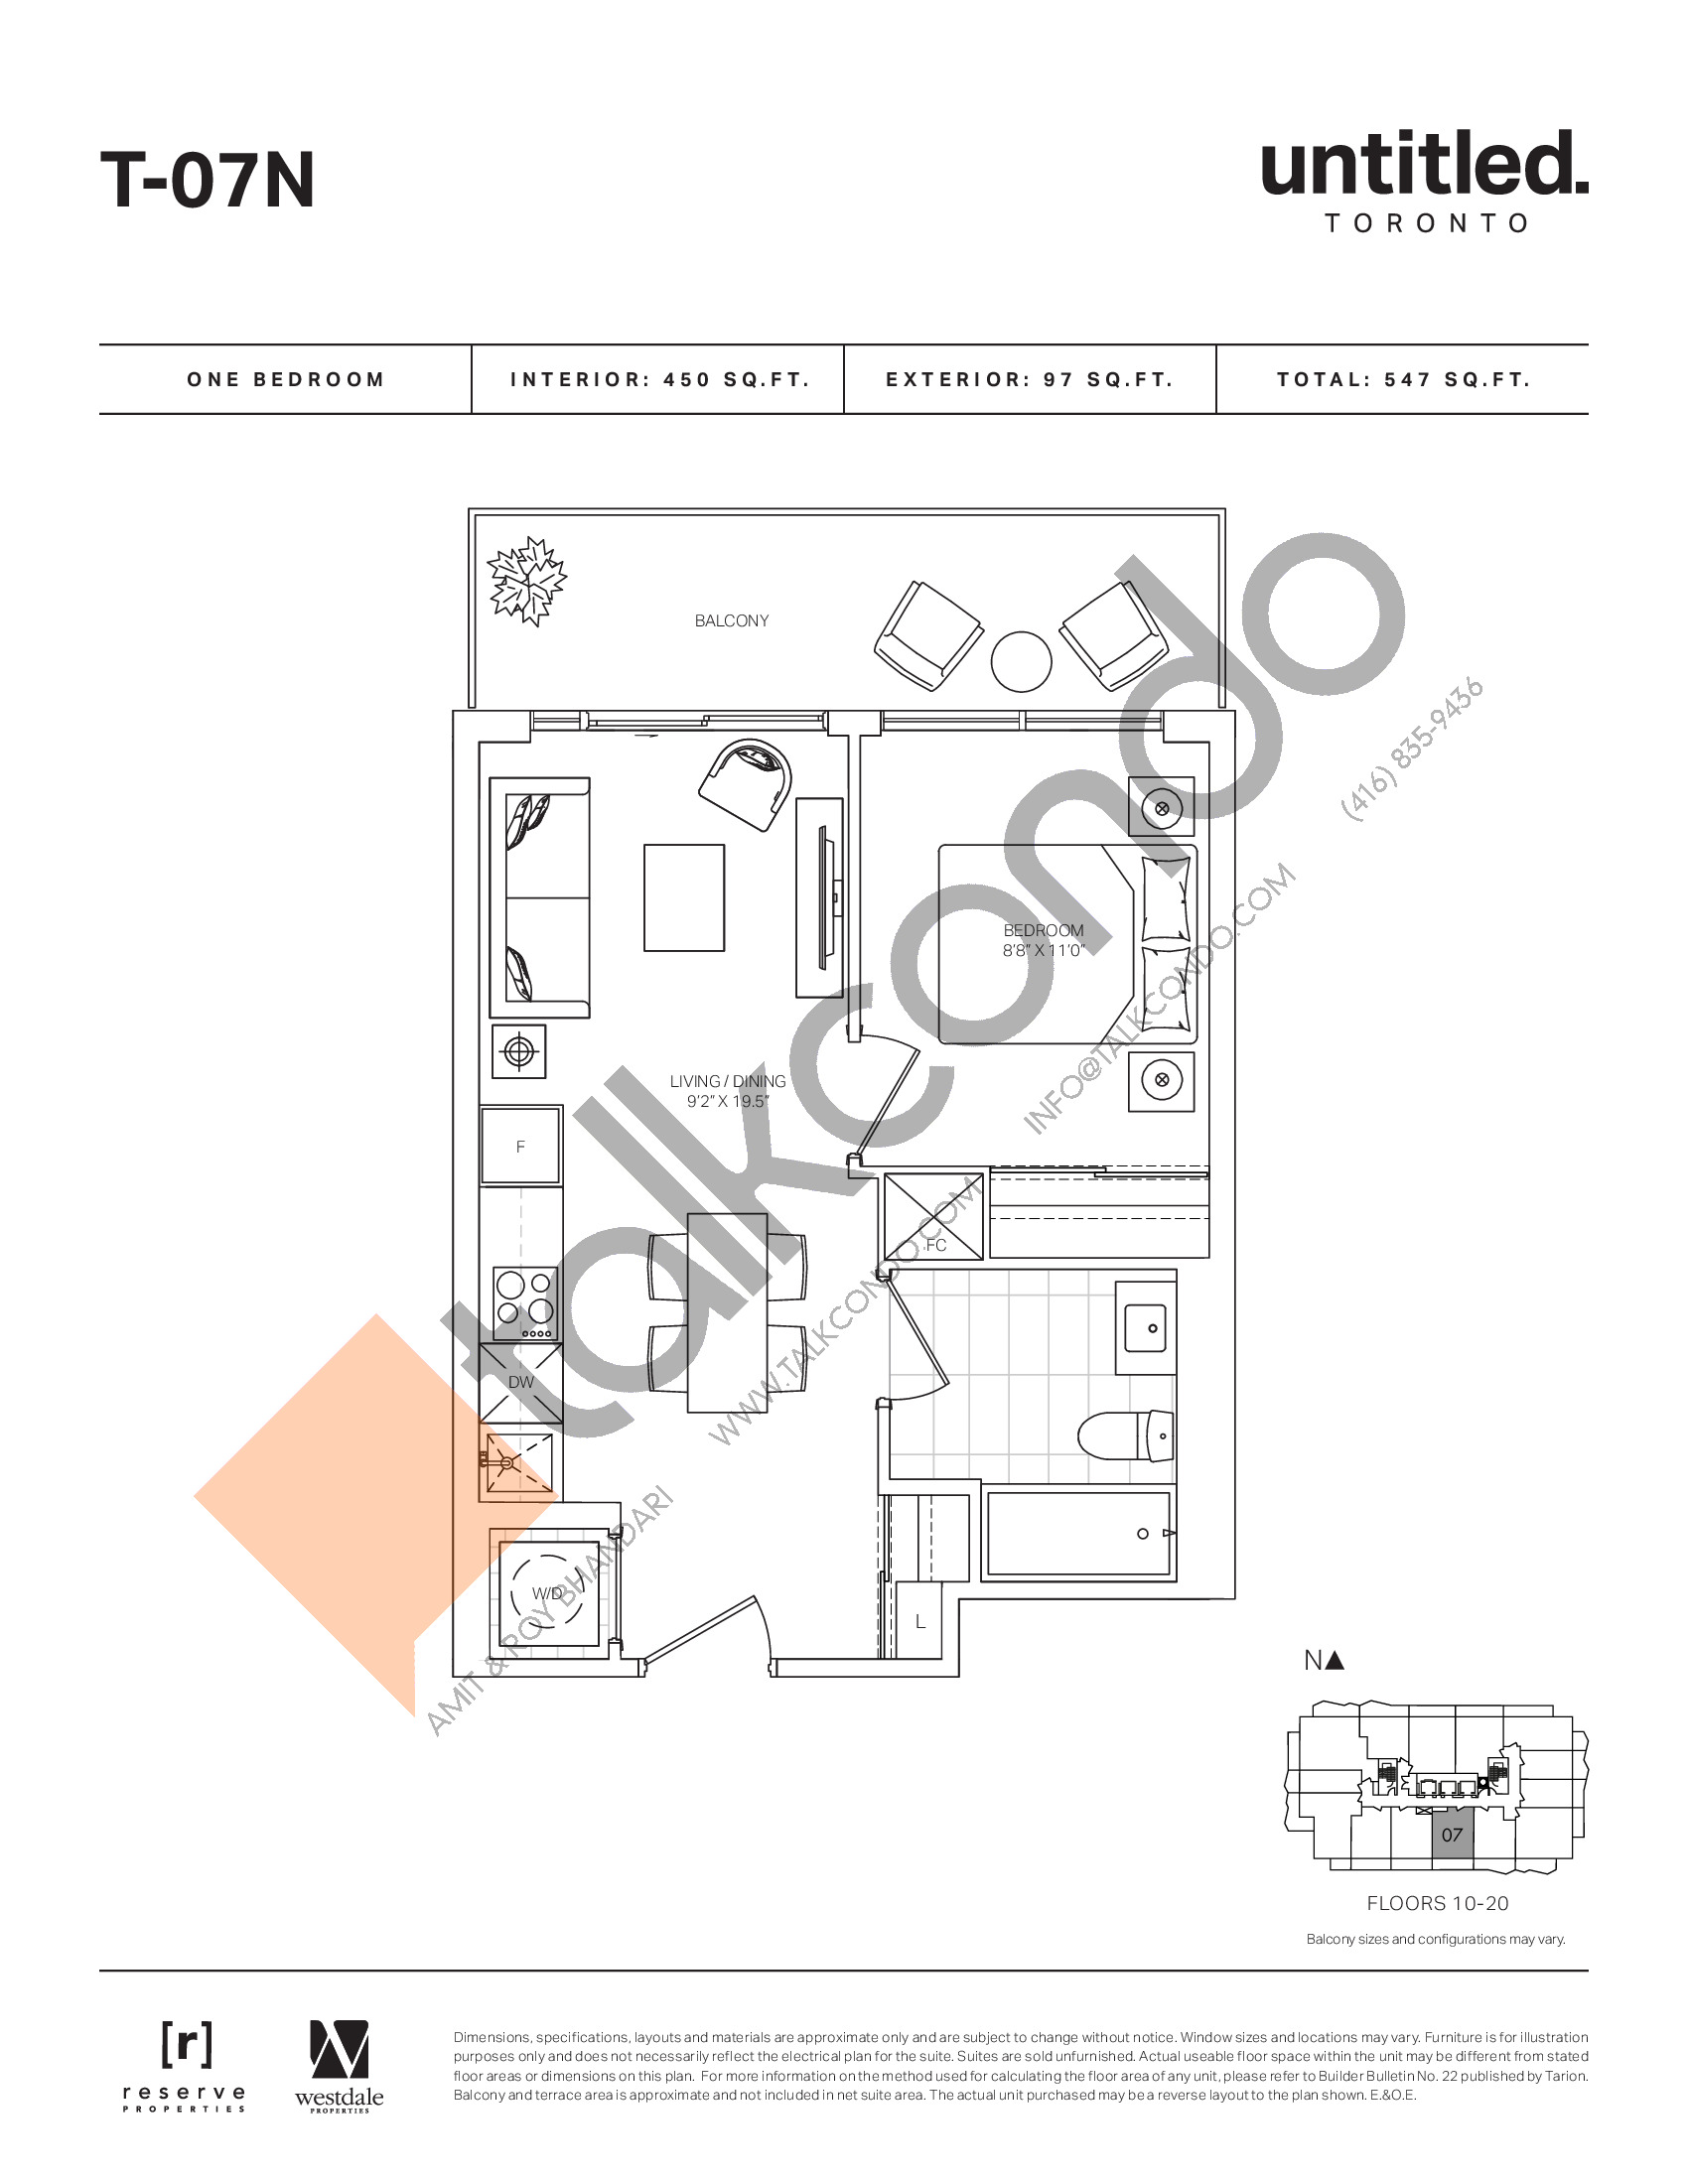 T-07N Floor Plan at Untitled North Tower Condos - 450 sq.ft